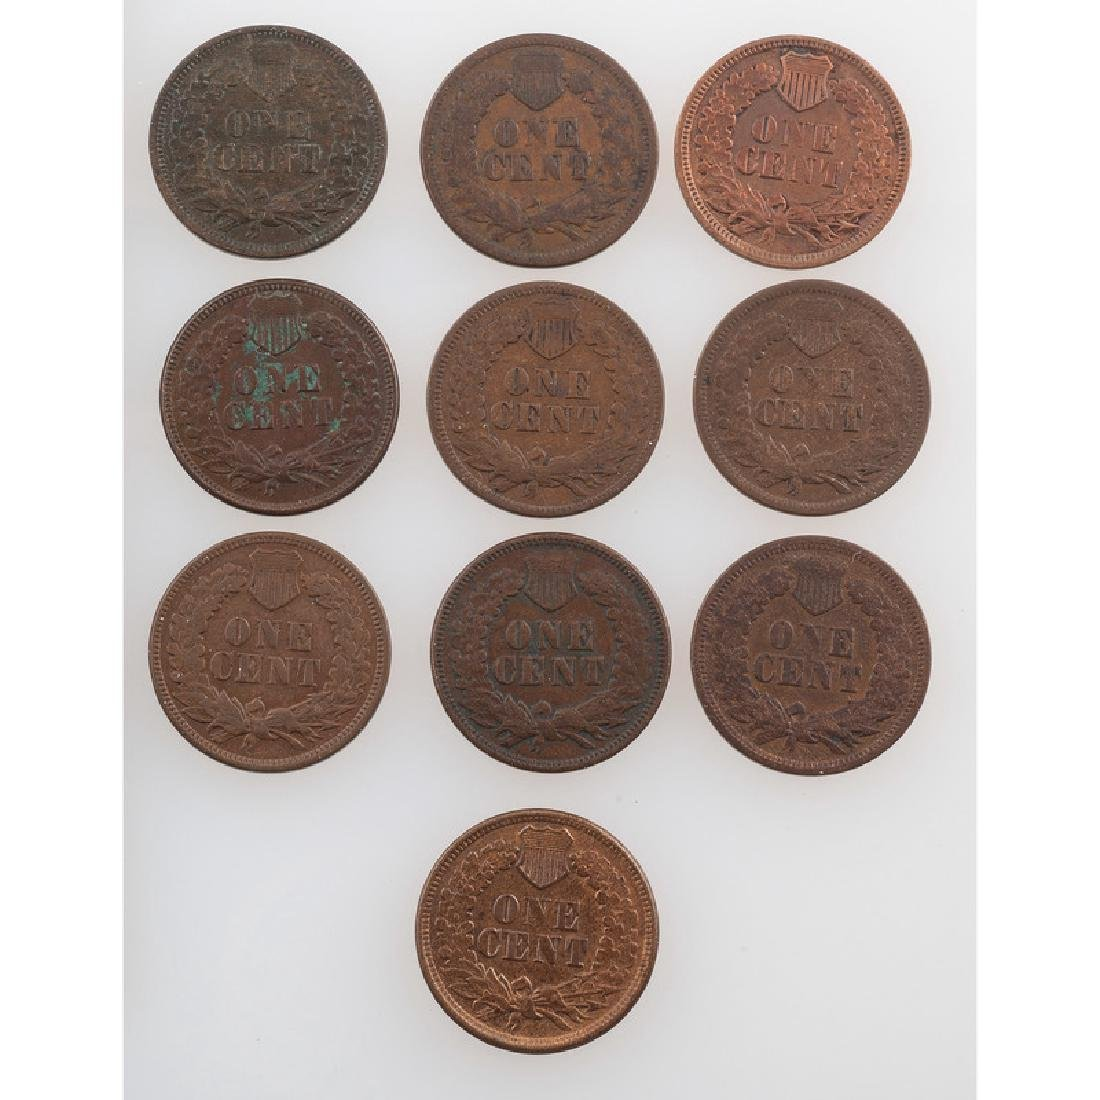 United States Indian Head Cents 1865-1873 - 2